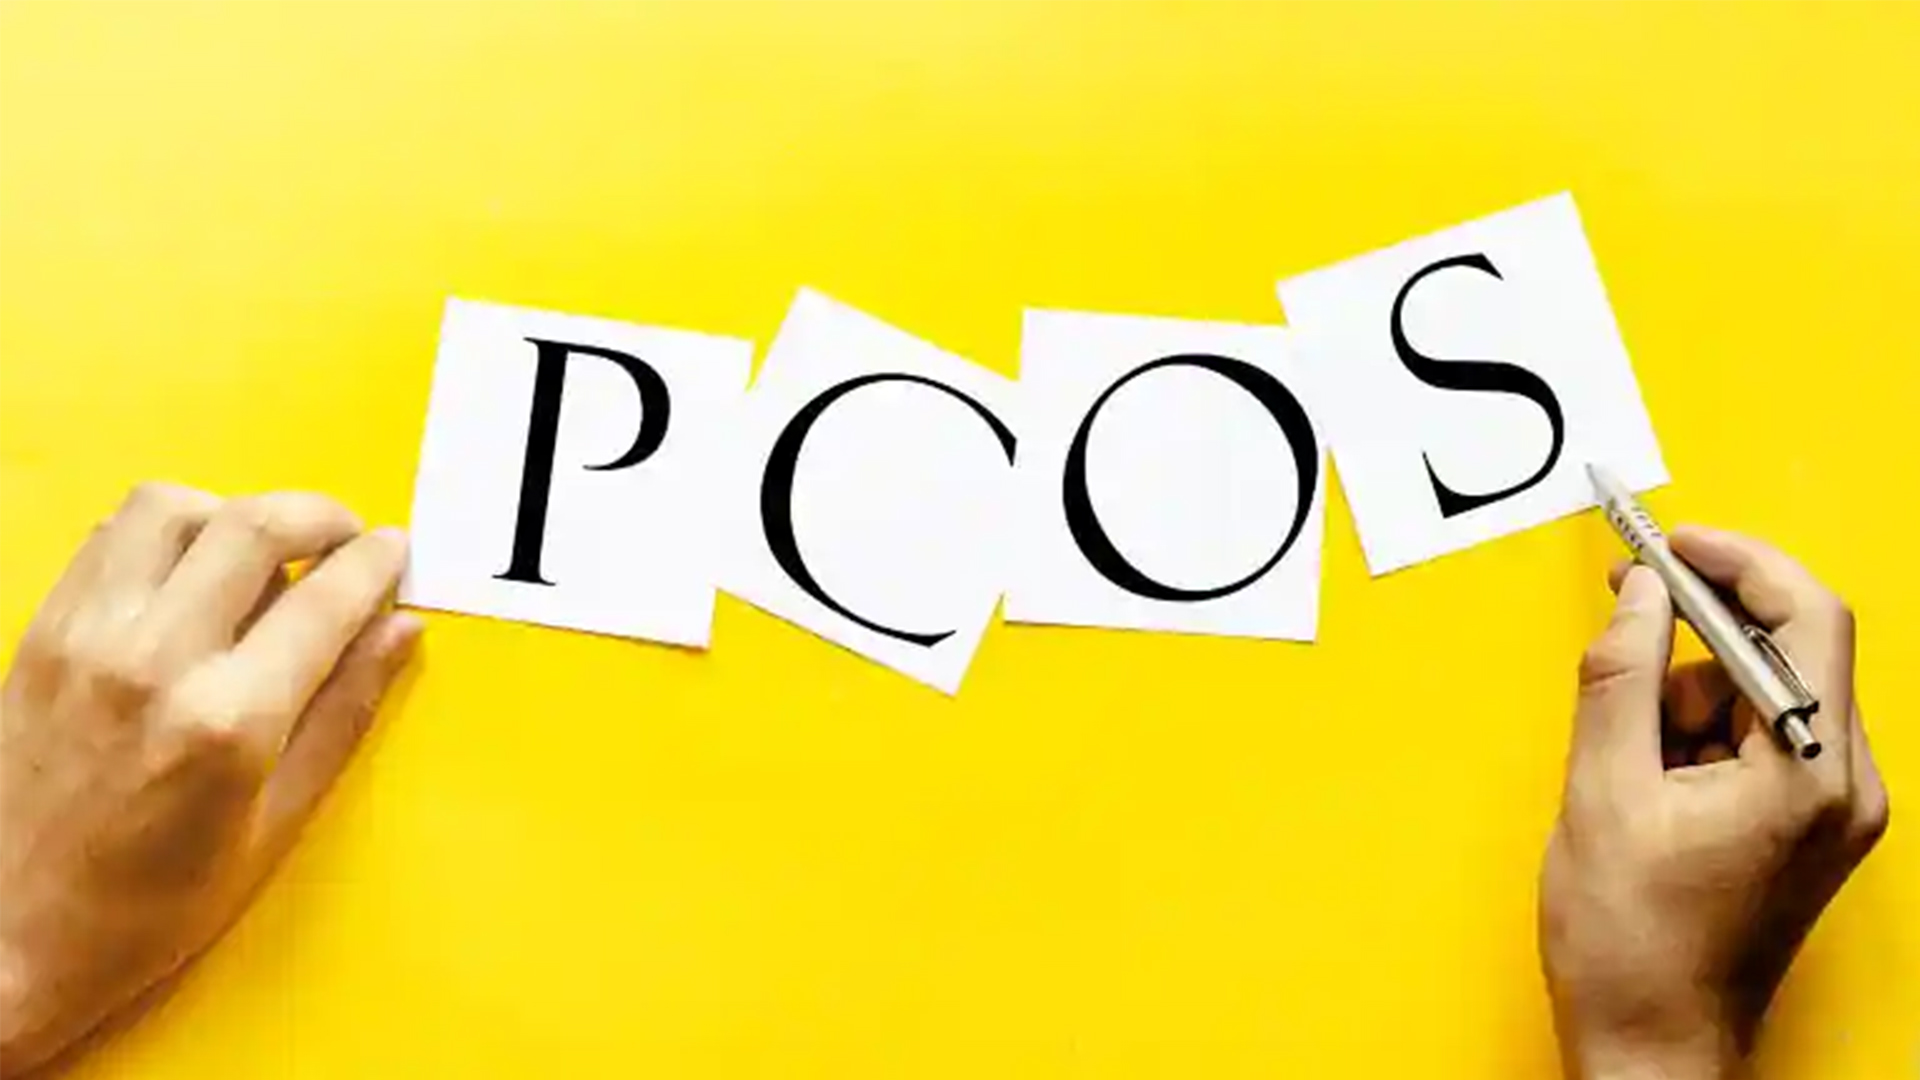 8 Effective ways to cure PCOS